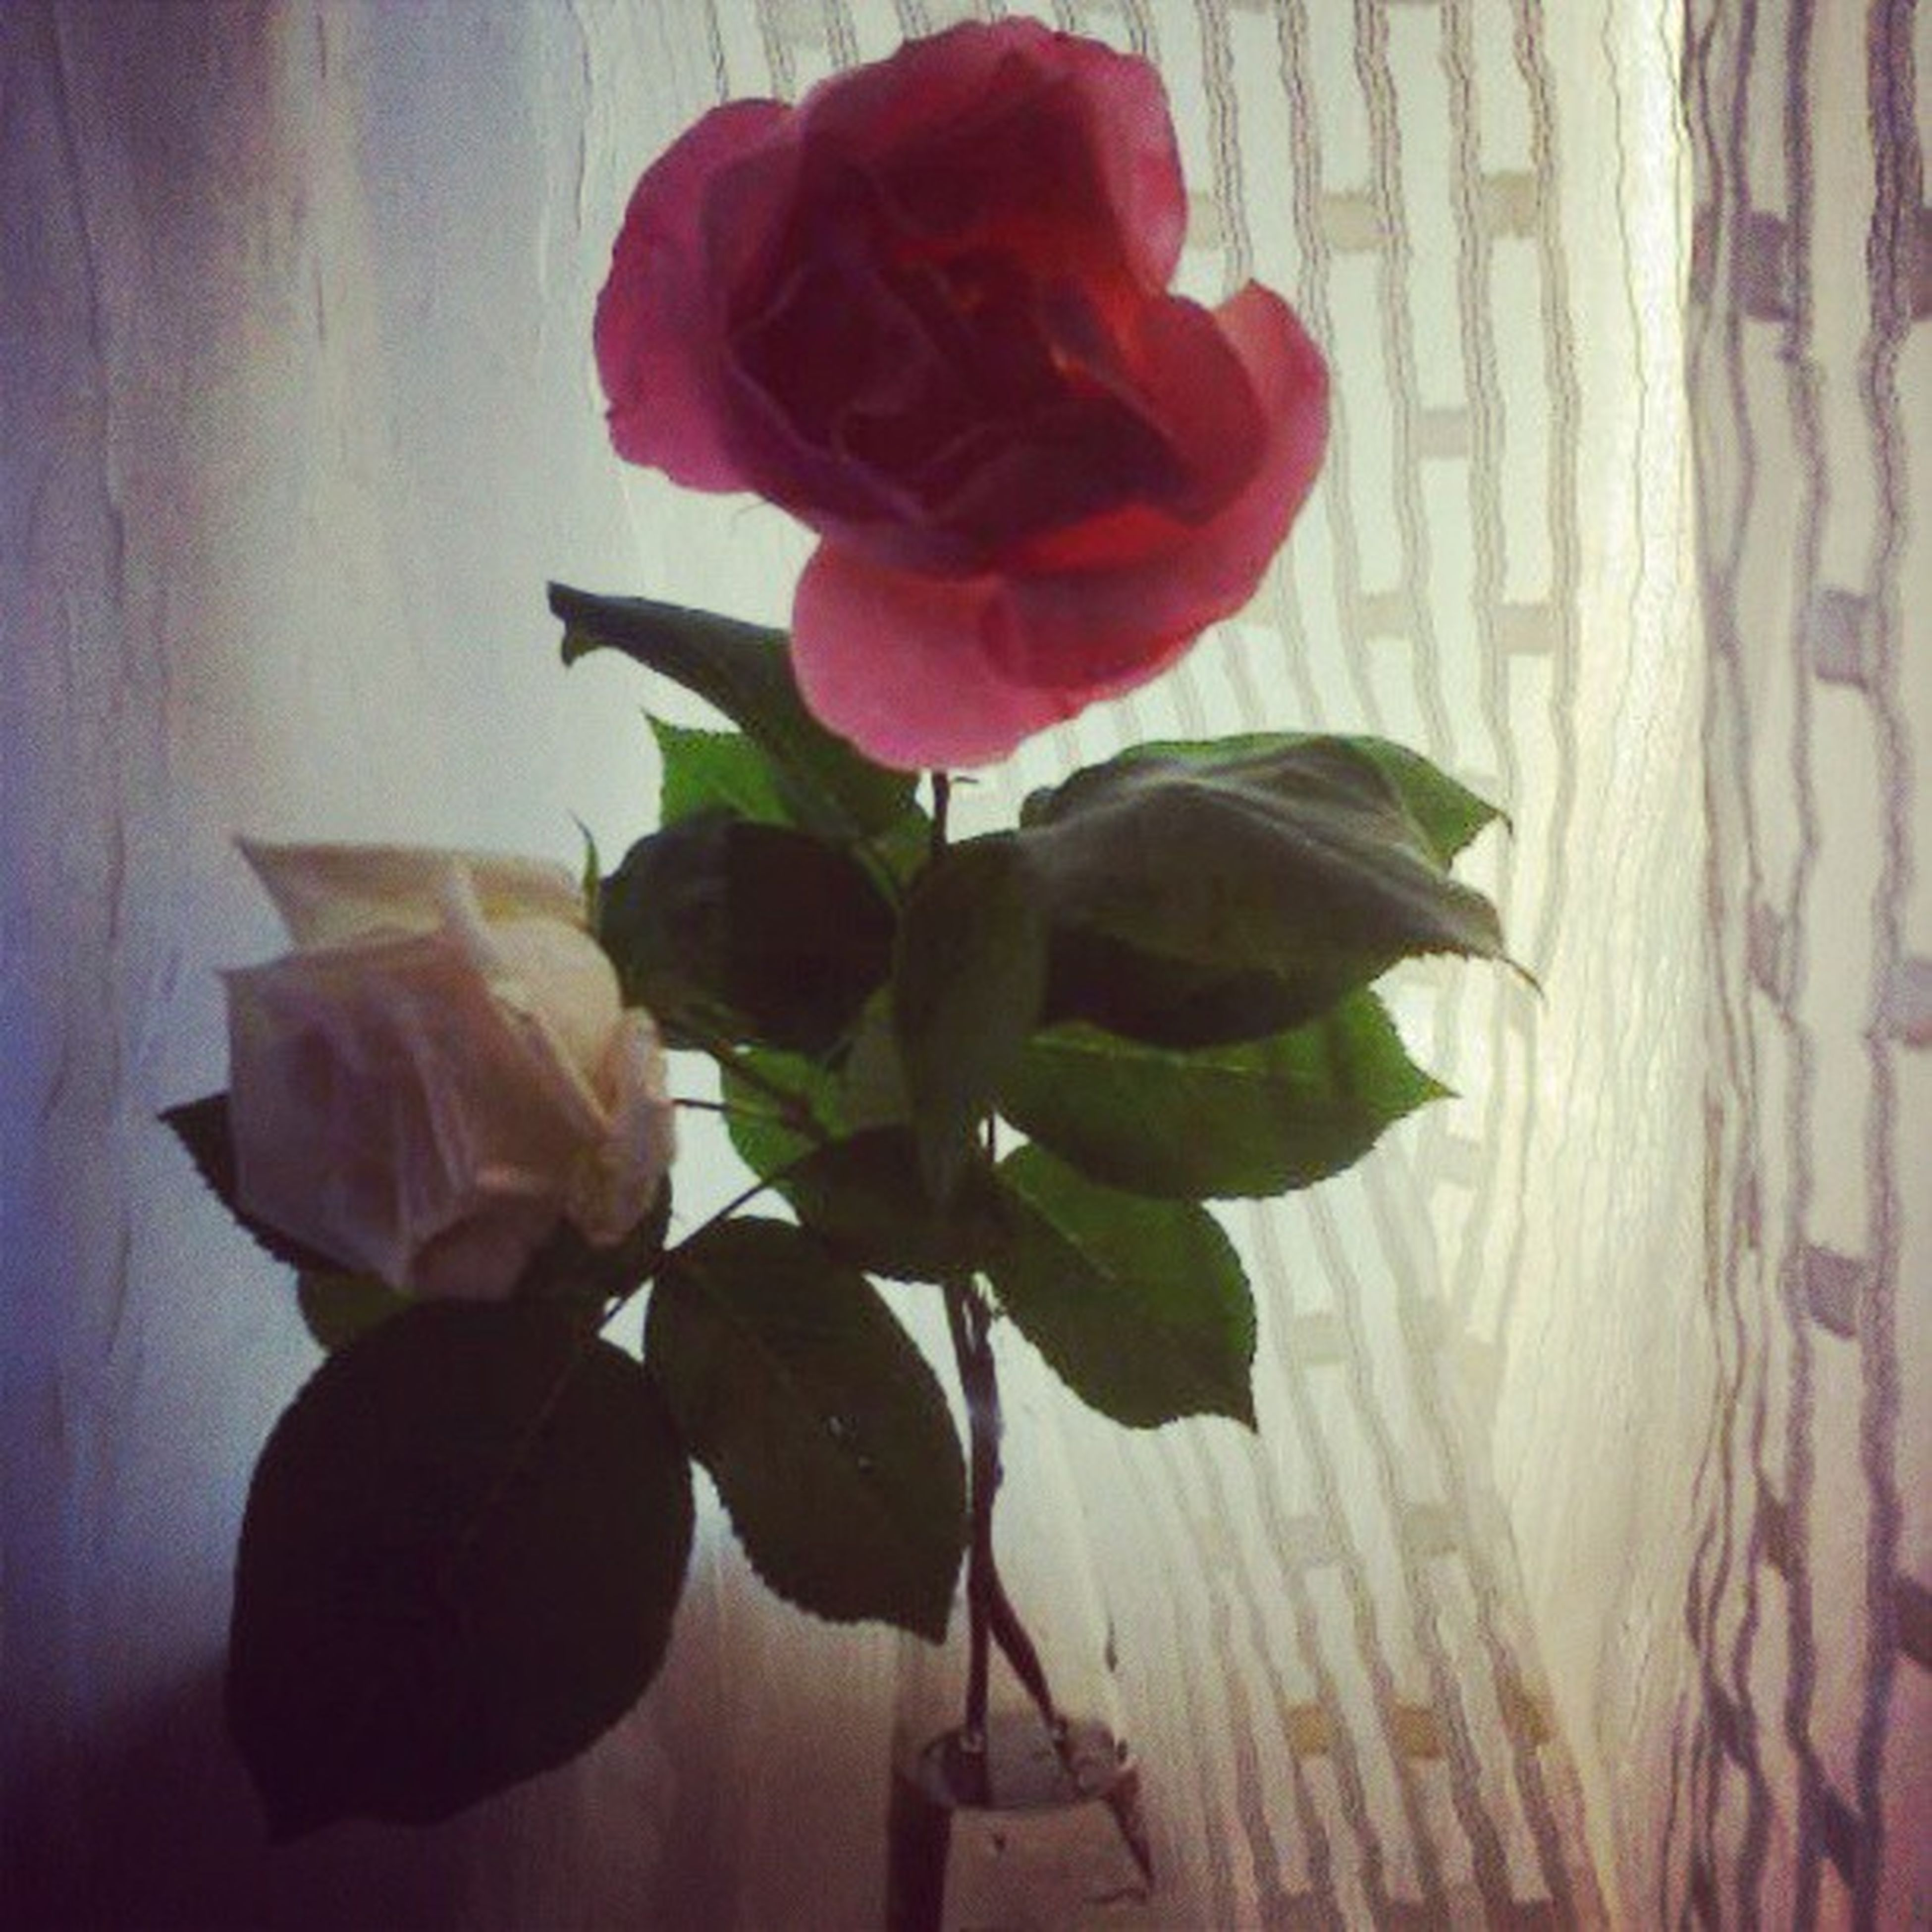 flower, petal, freshness, flower head, fragility, rose - flower, indoors, leaf, growth, beauty in nature, red, plant, nature, rose, close-up, stem, single flower, vase, wall - building feature, blooming